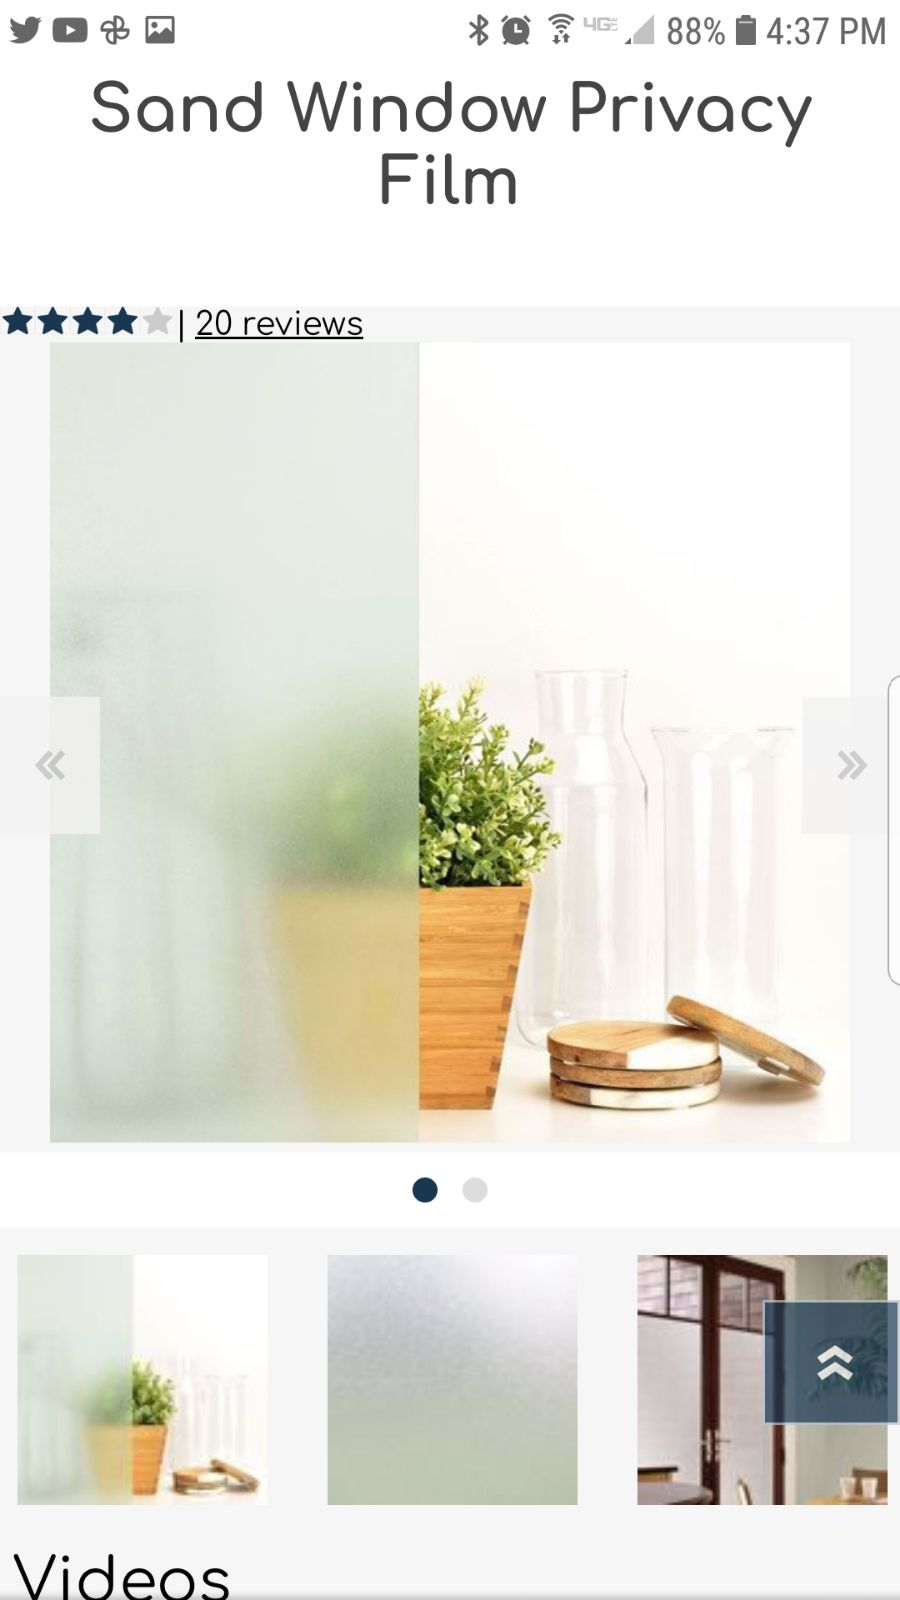 Glass Cling privacy film Sand